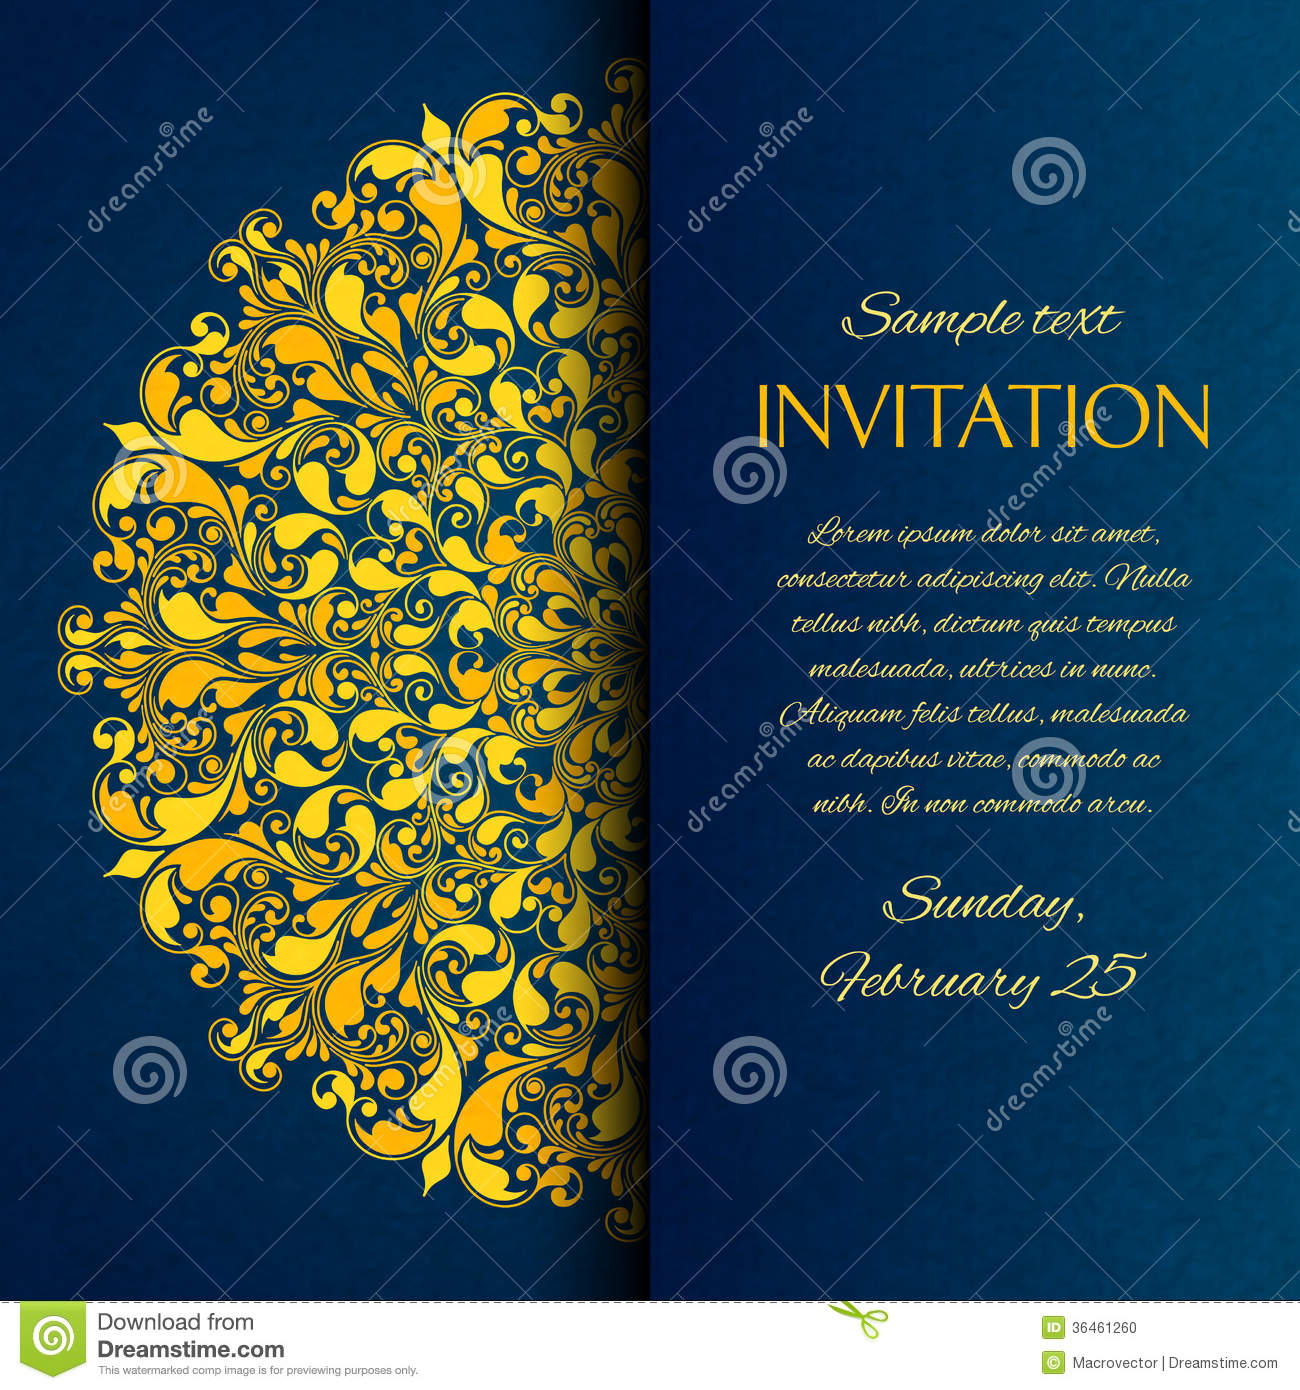 Blue and gold invitations templates stopboris Choice Image